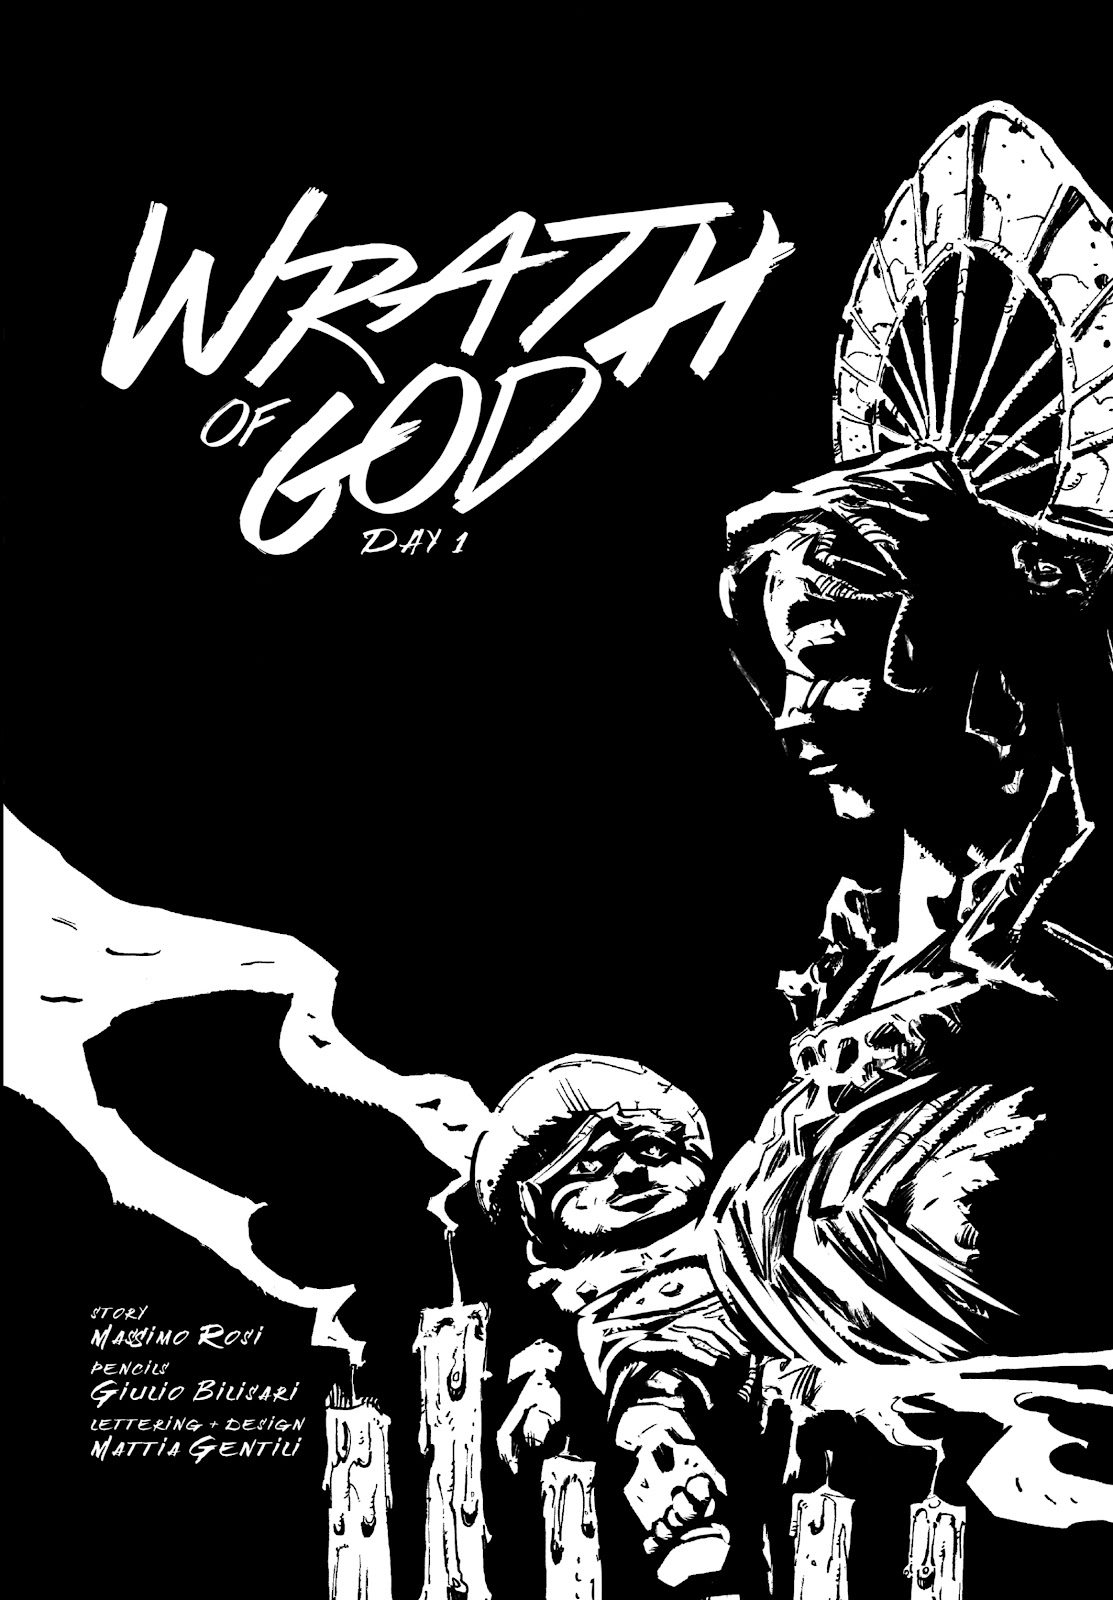 Read online Wrath of God comic -  Issue #1 - 7